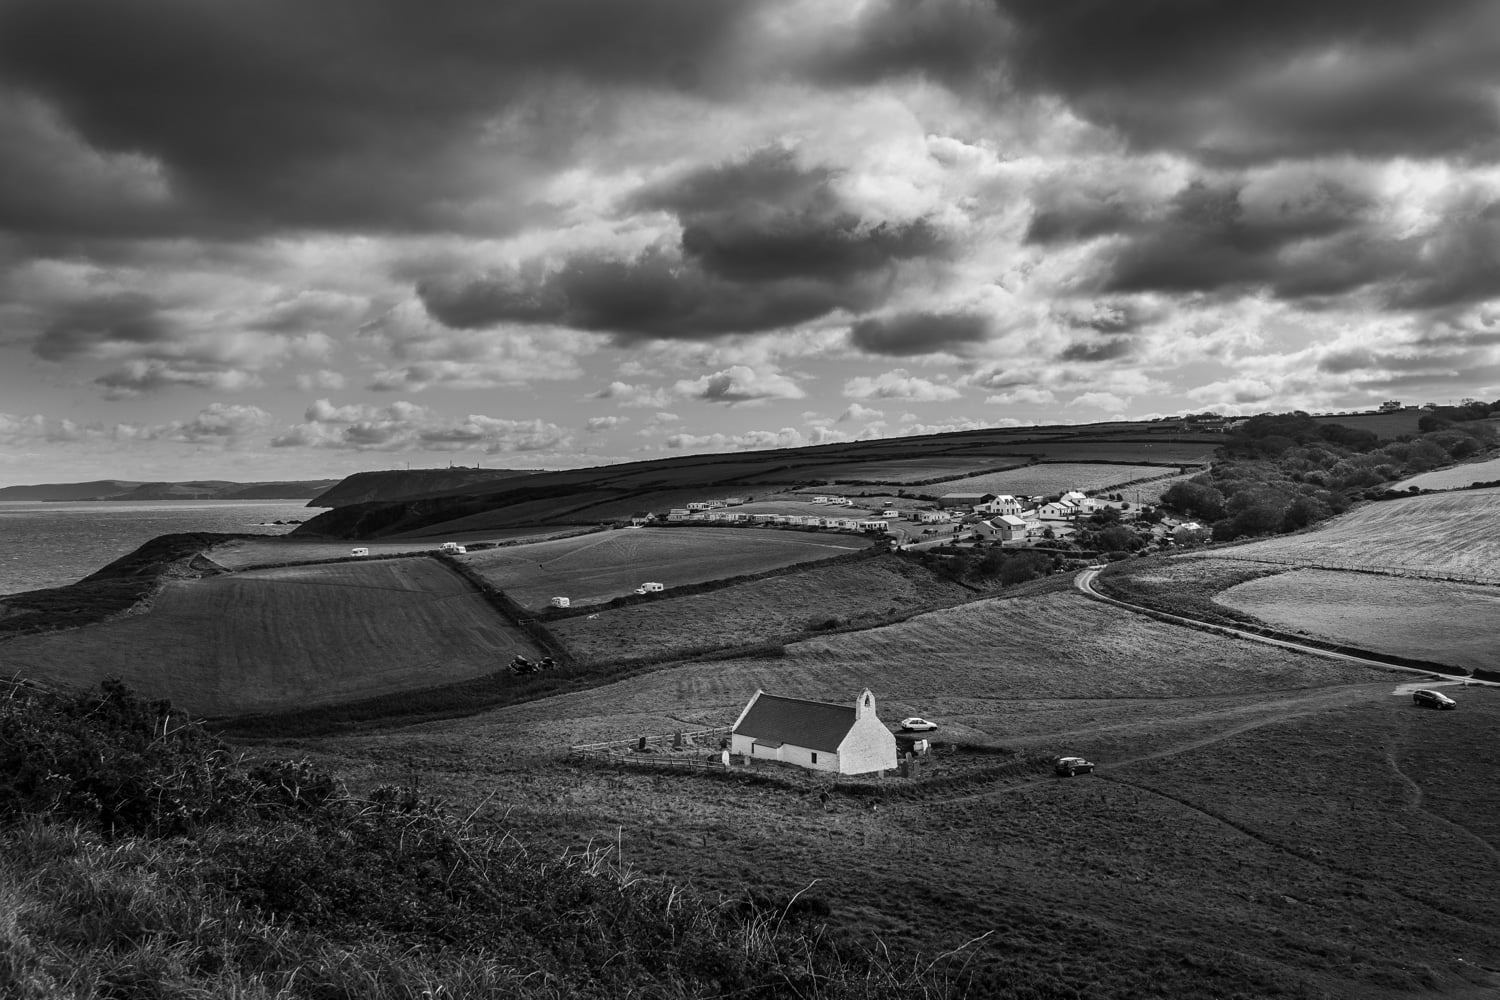 Mwnt Church, West Wales